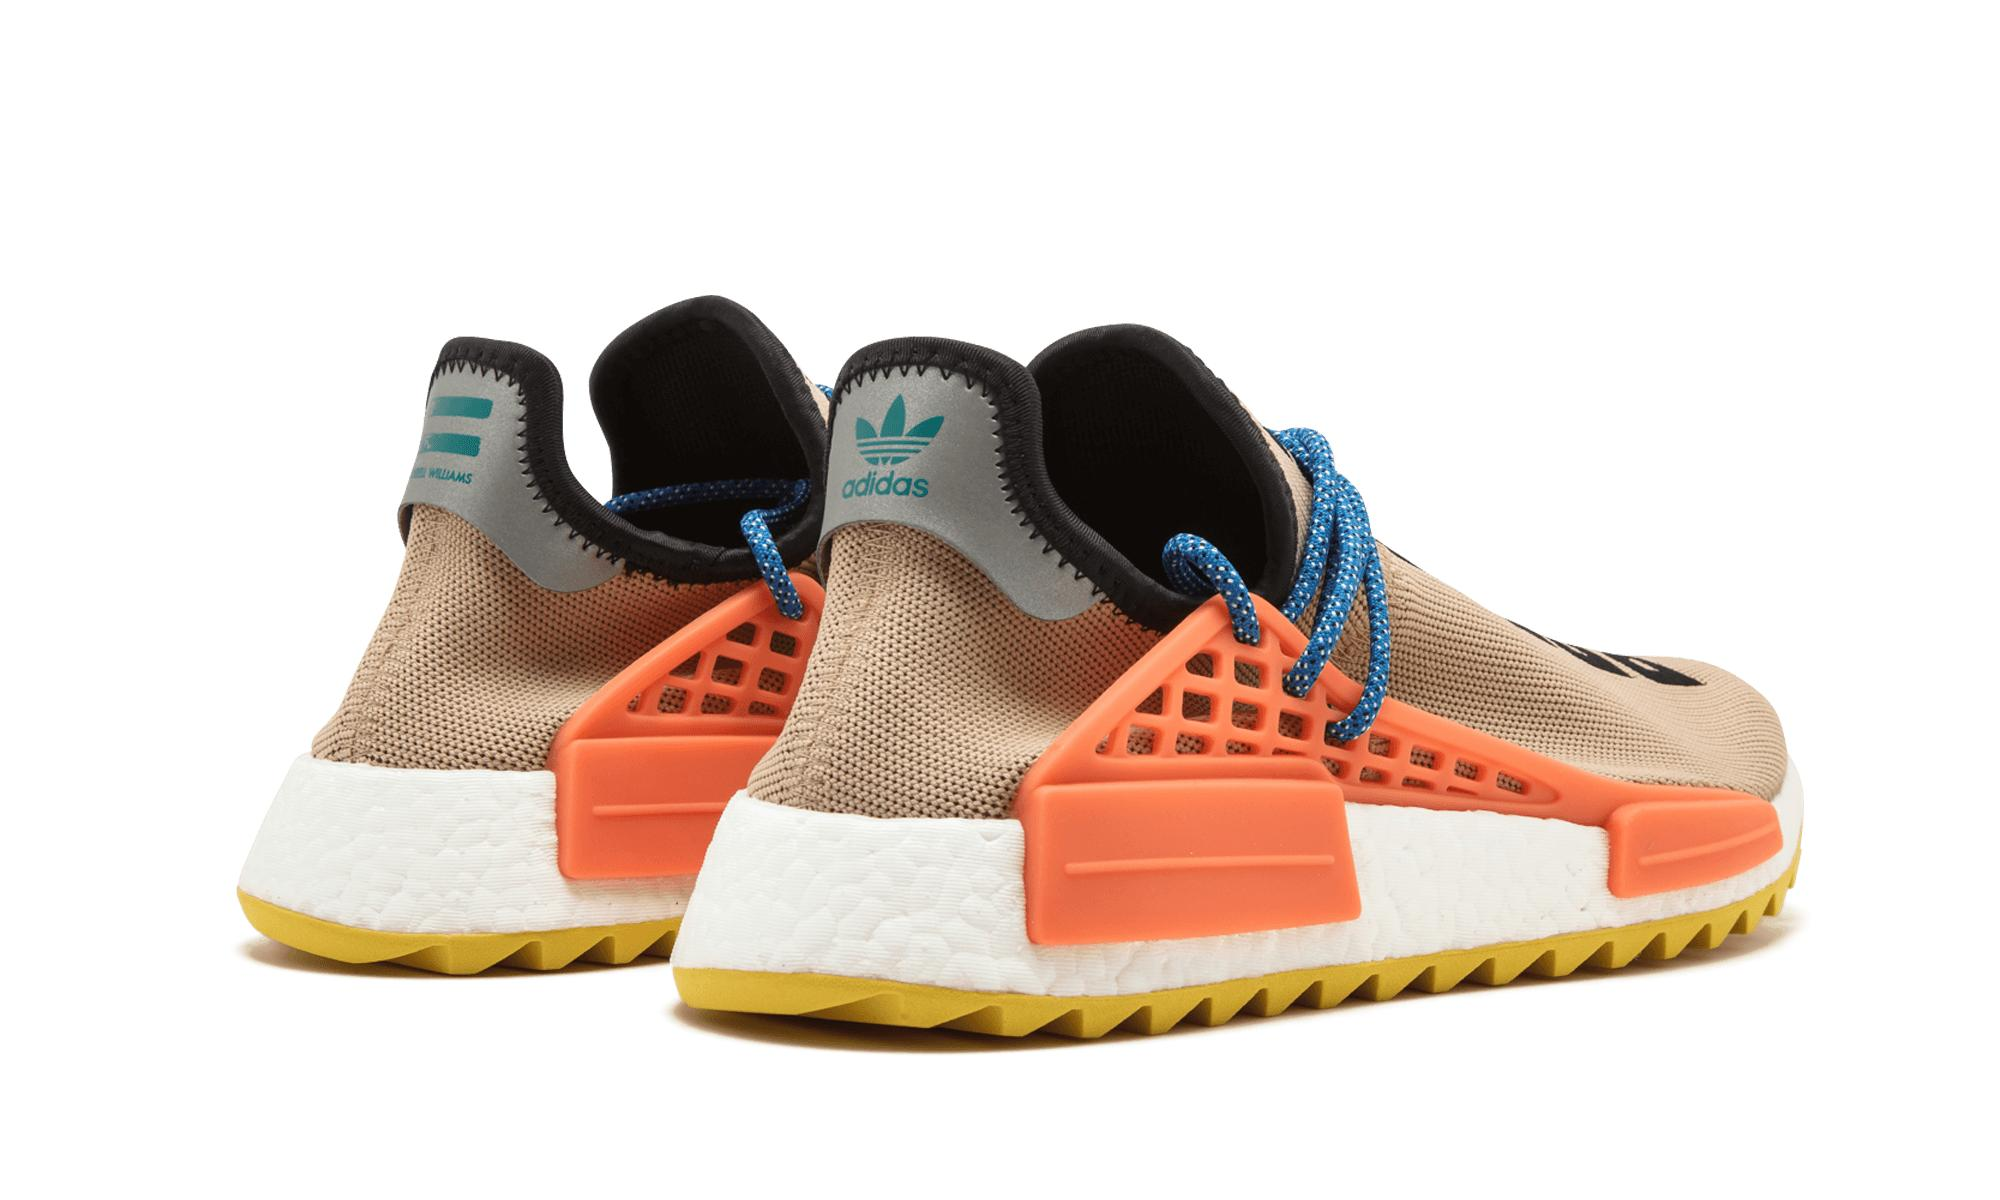 f6a9f96ffdc4f Adidas - Multicolor Pw Human Race Nmd Tr for Men - Lyst. View fullscreen